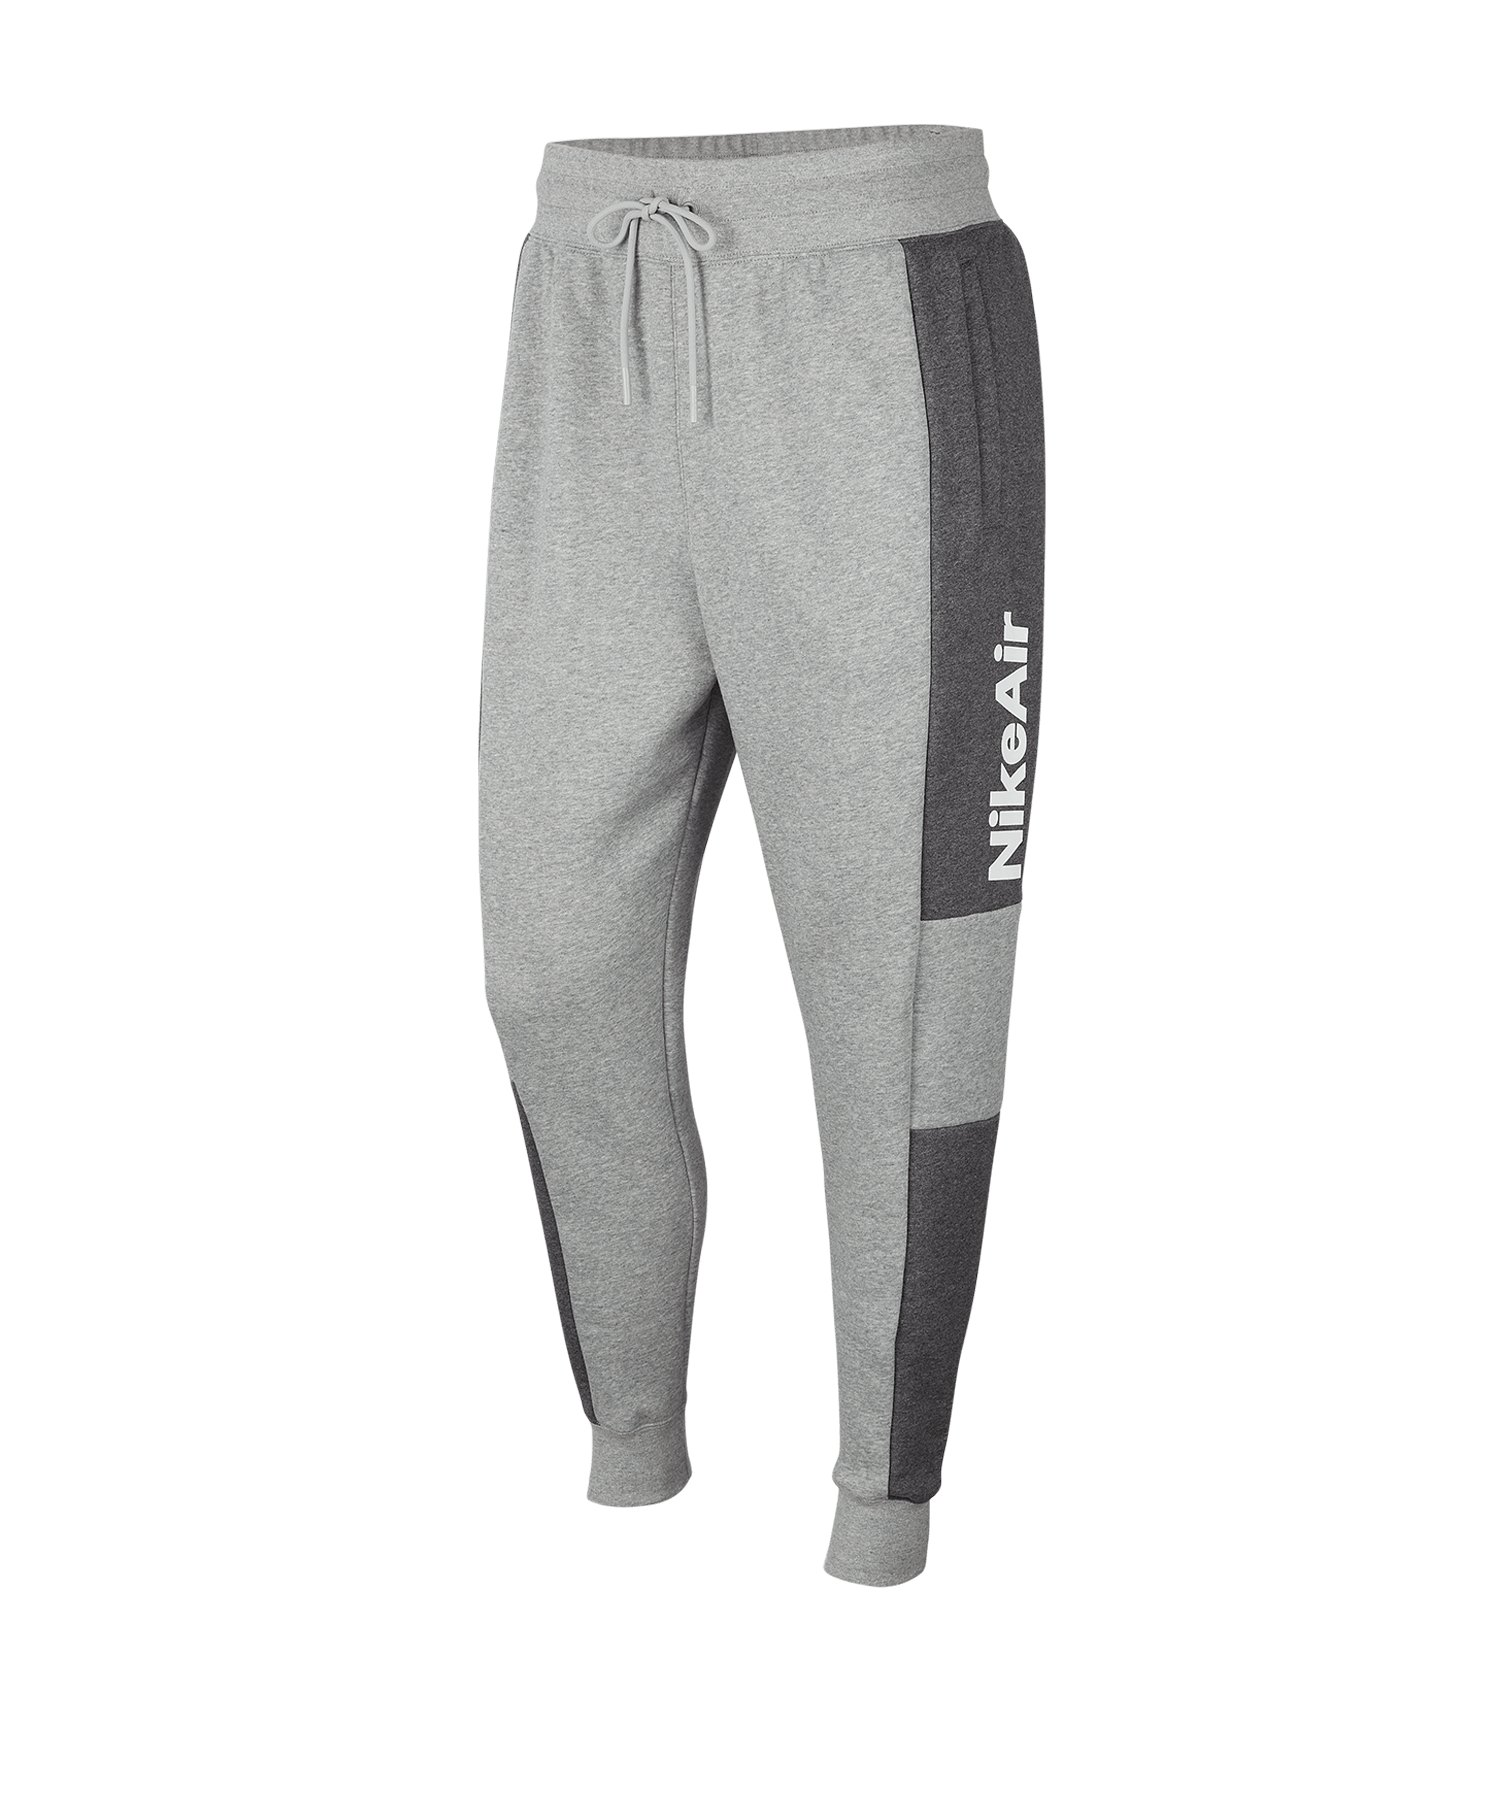 Nike Air Fleece Jogginghose Grau F063 - grau